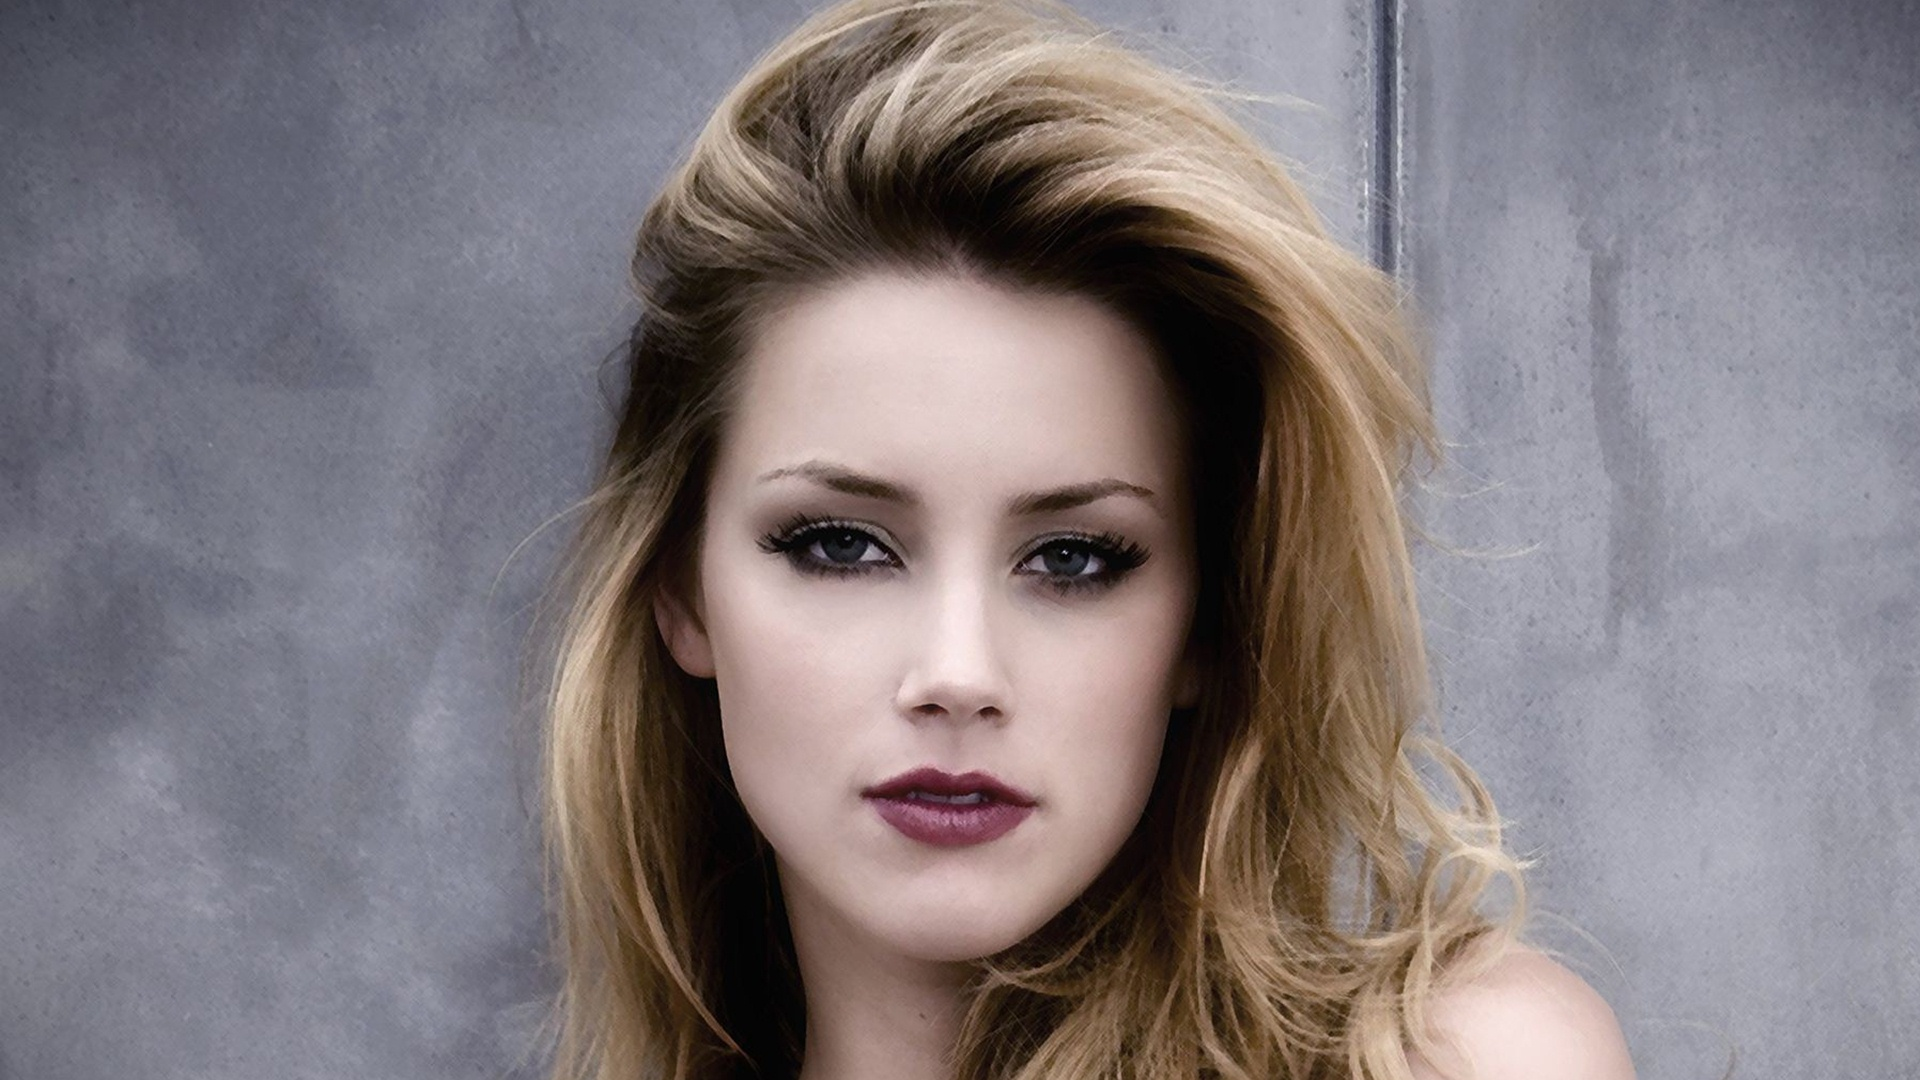 Amber Heard Wallpapers HD Backgrounds Images Pics Photos 1920x1080